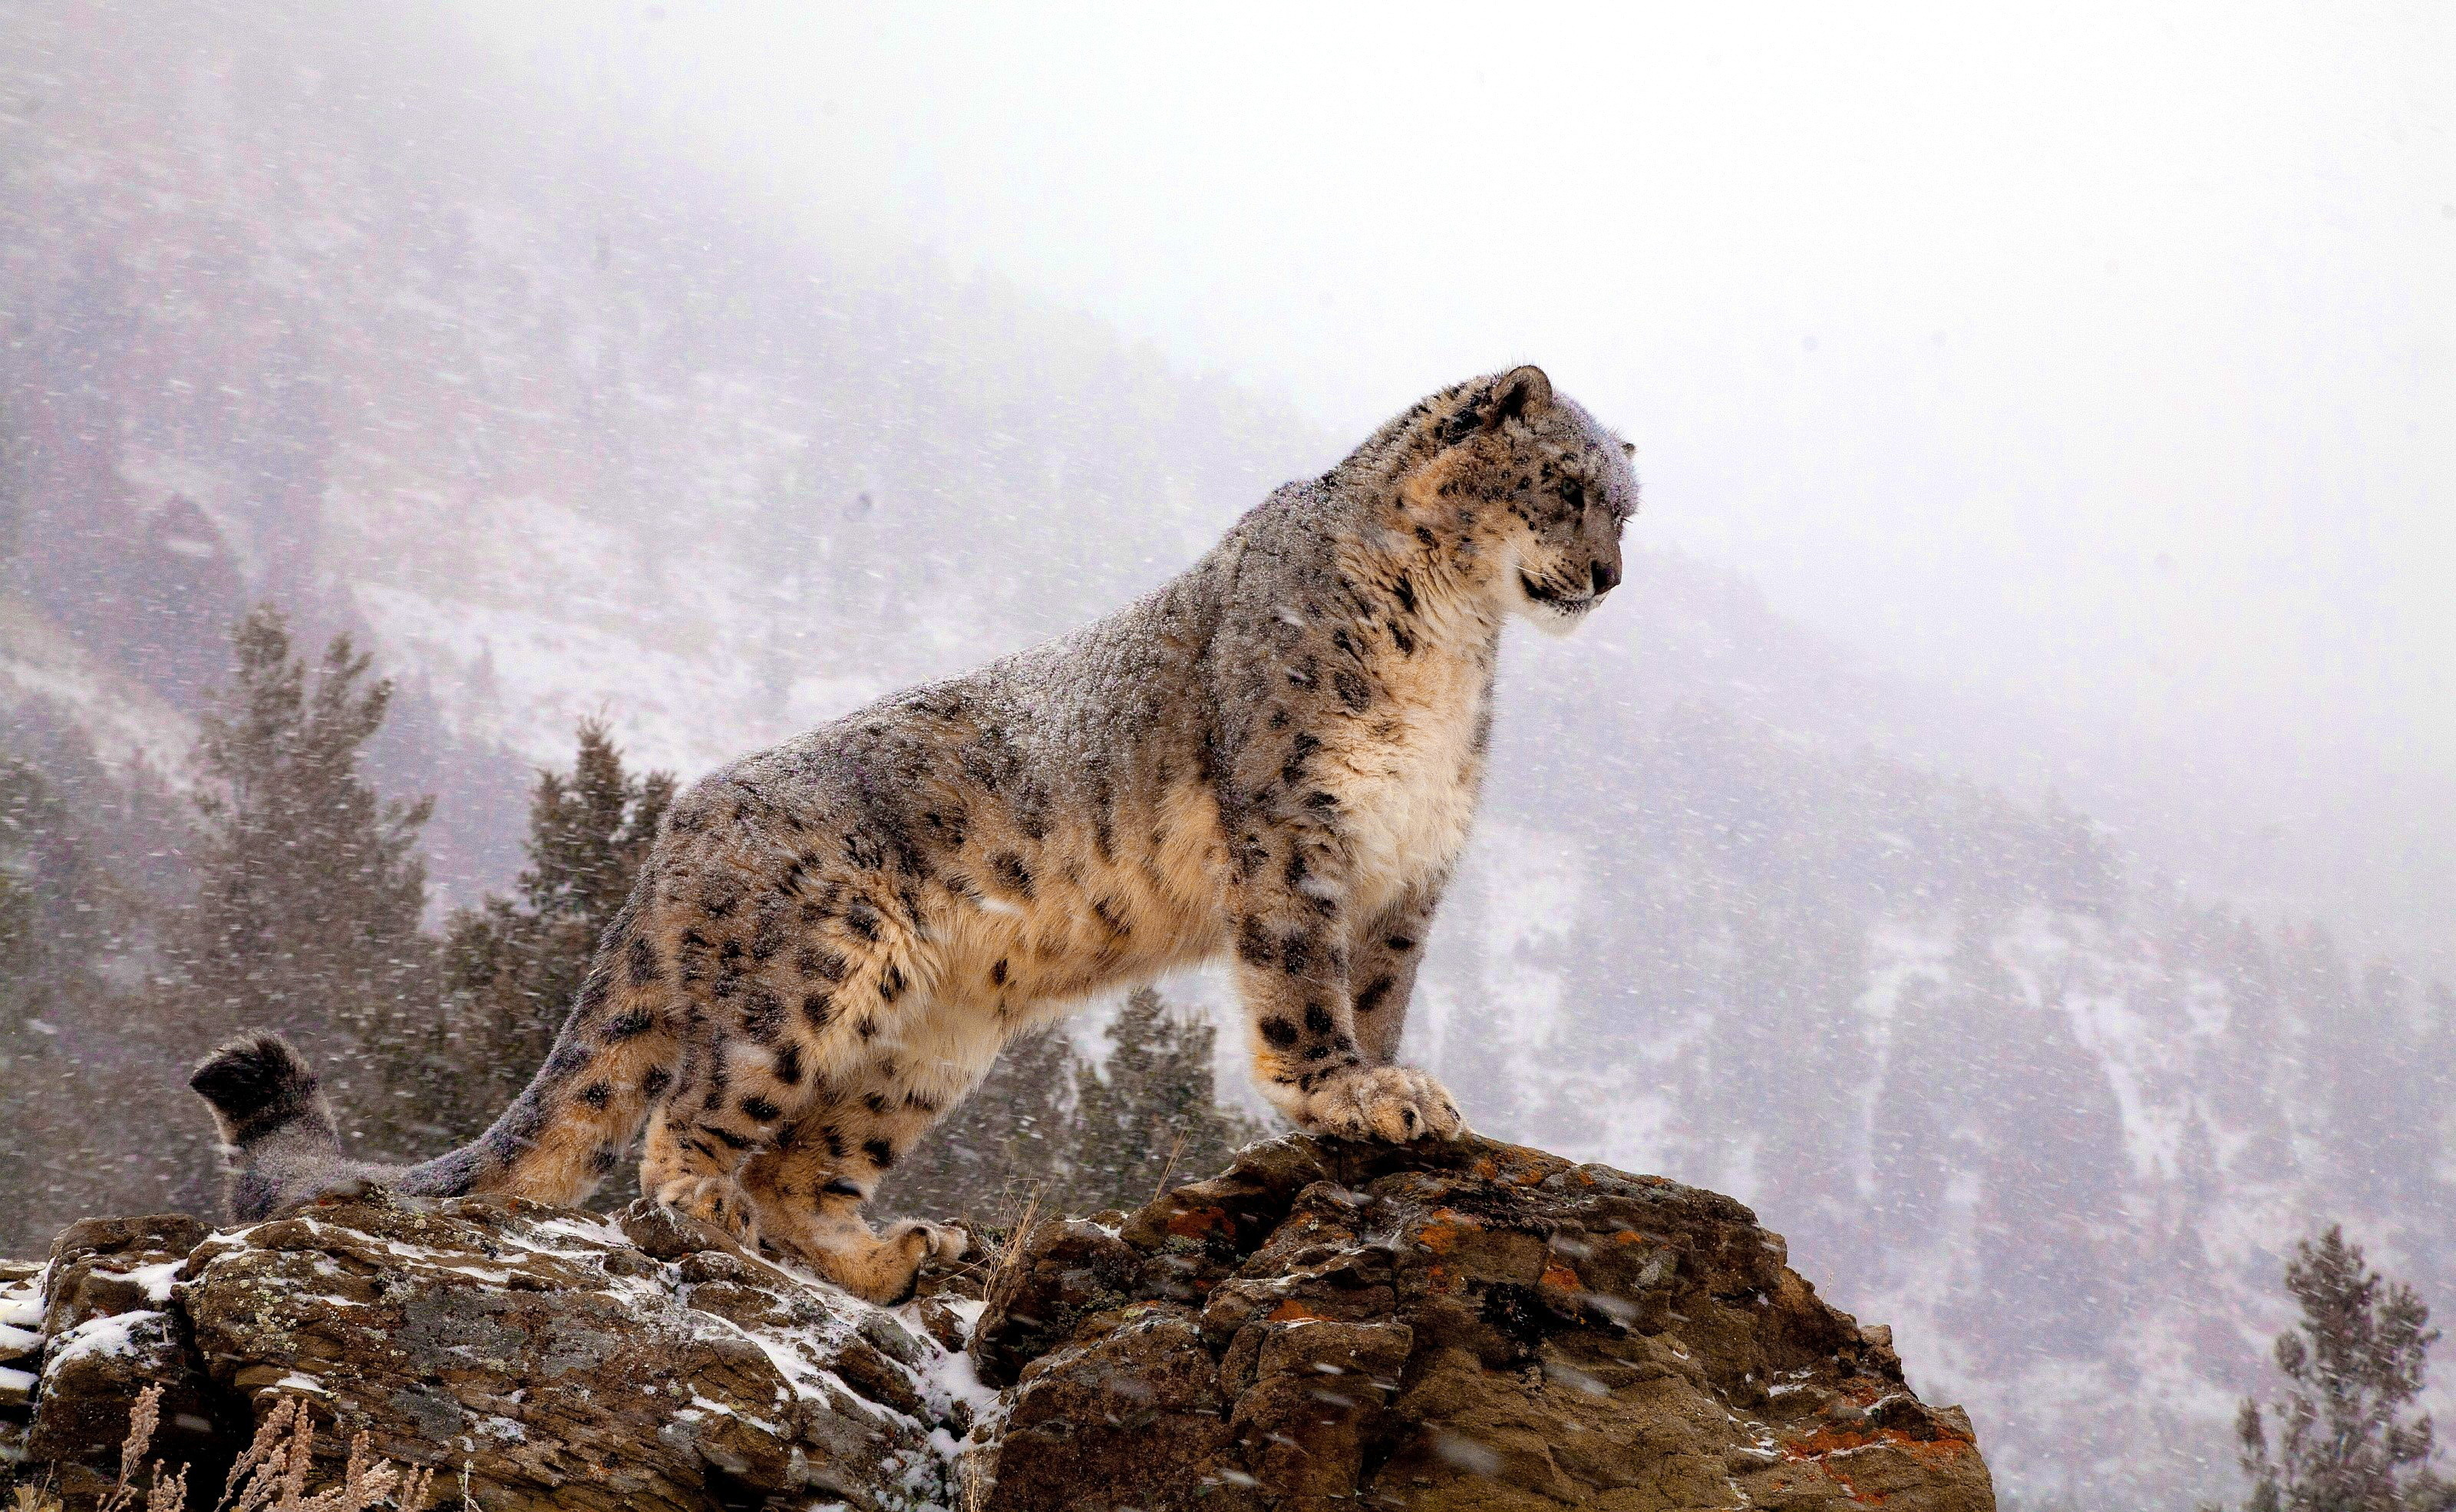 4K Snow Leopard Wallpapers High Quality | Download Free